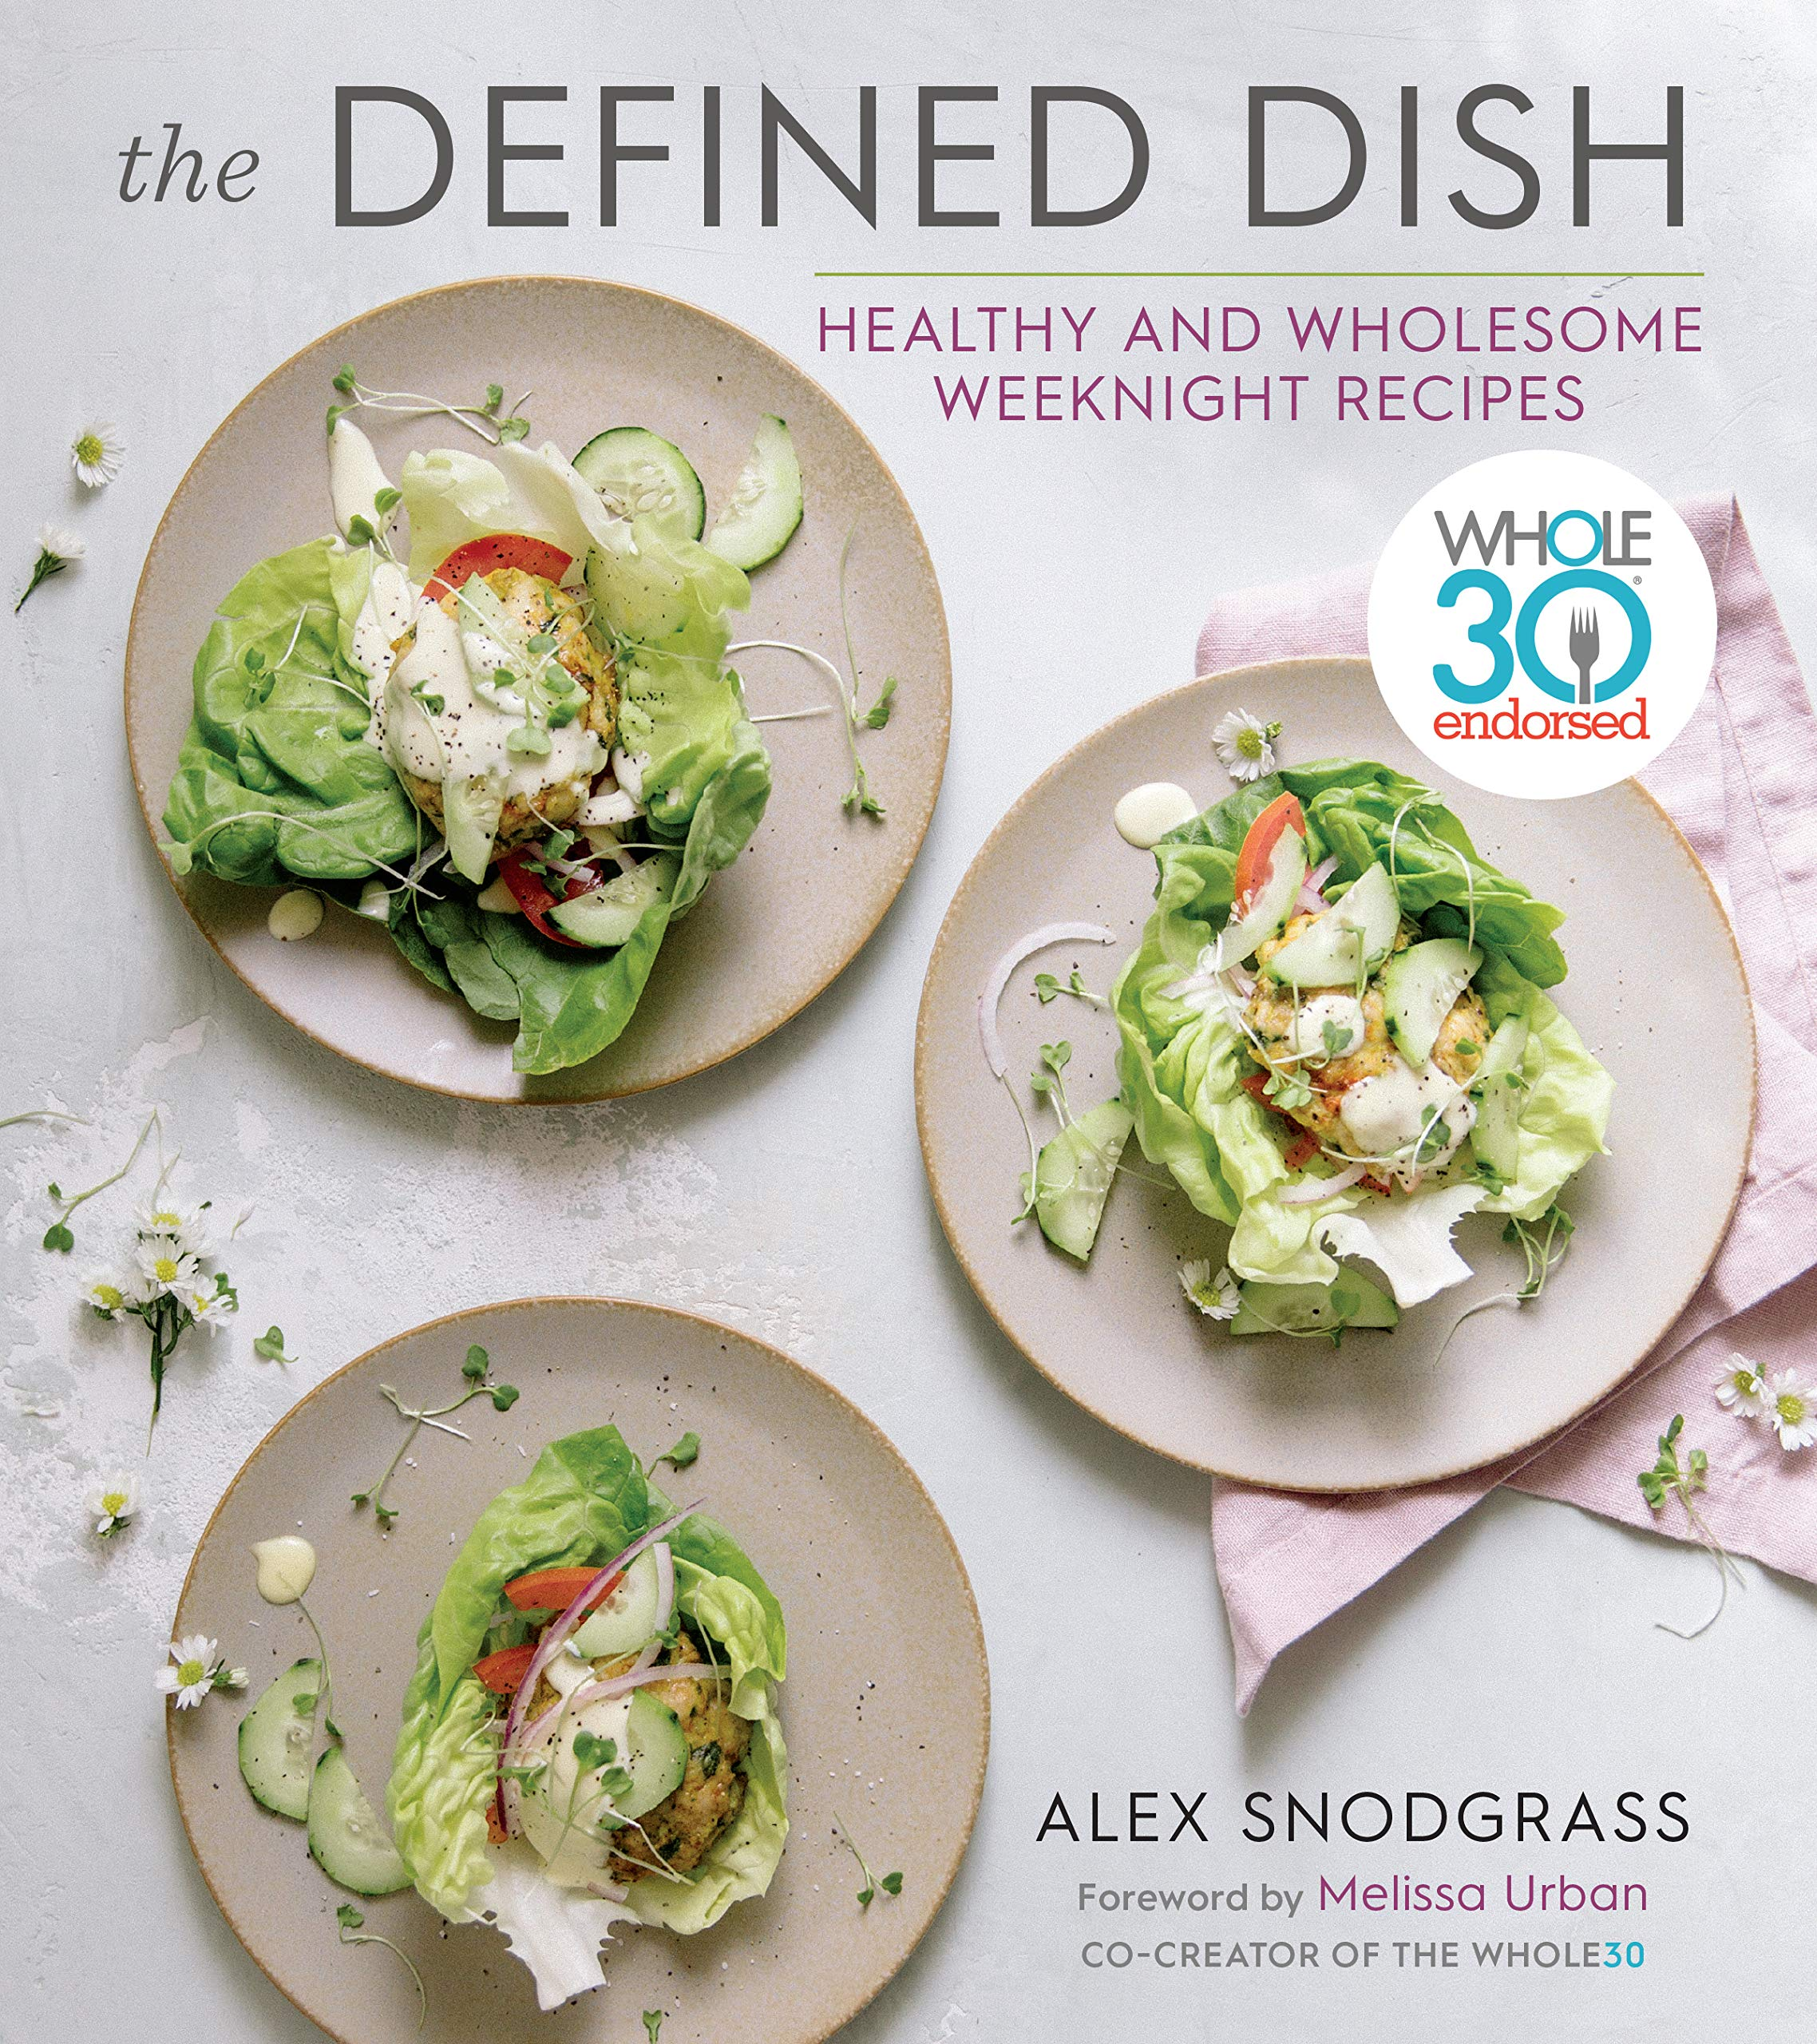 The Defined Dish: Whole30 Endorsed, Healthy and Wholesome Weeknight Recipes by Houghton Mifflin Harcourt